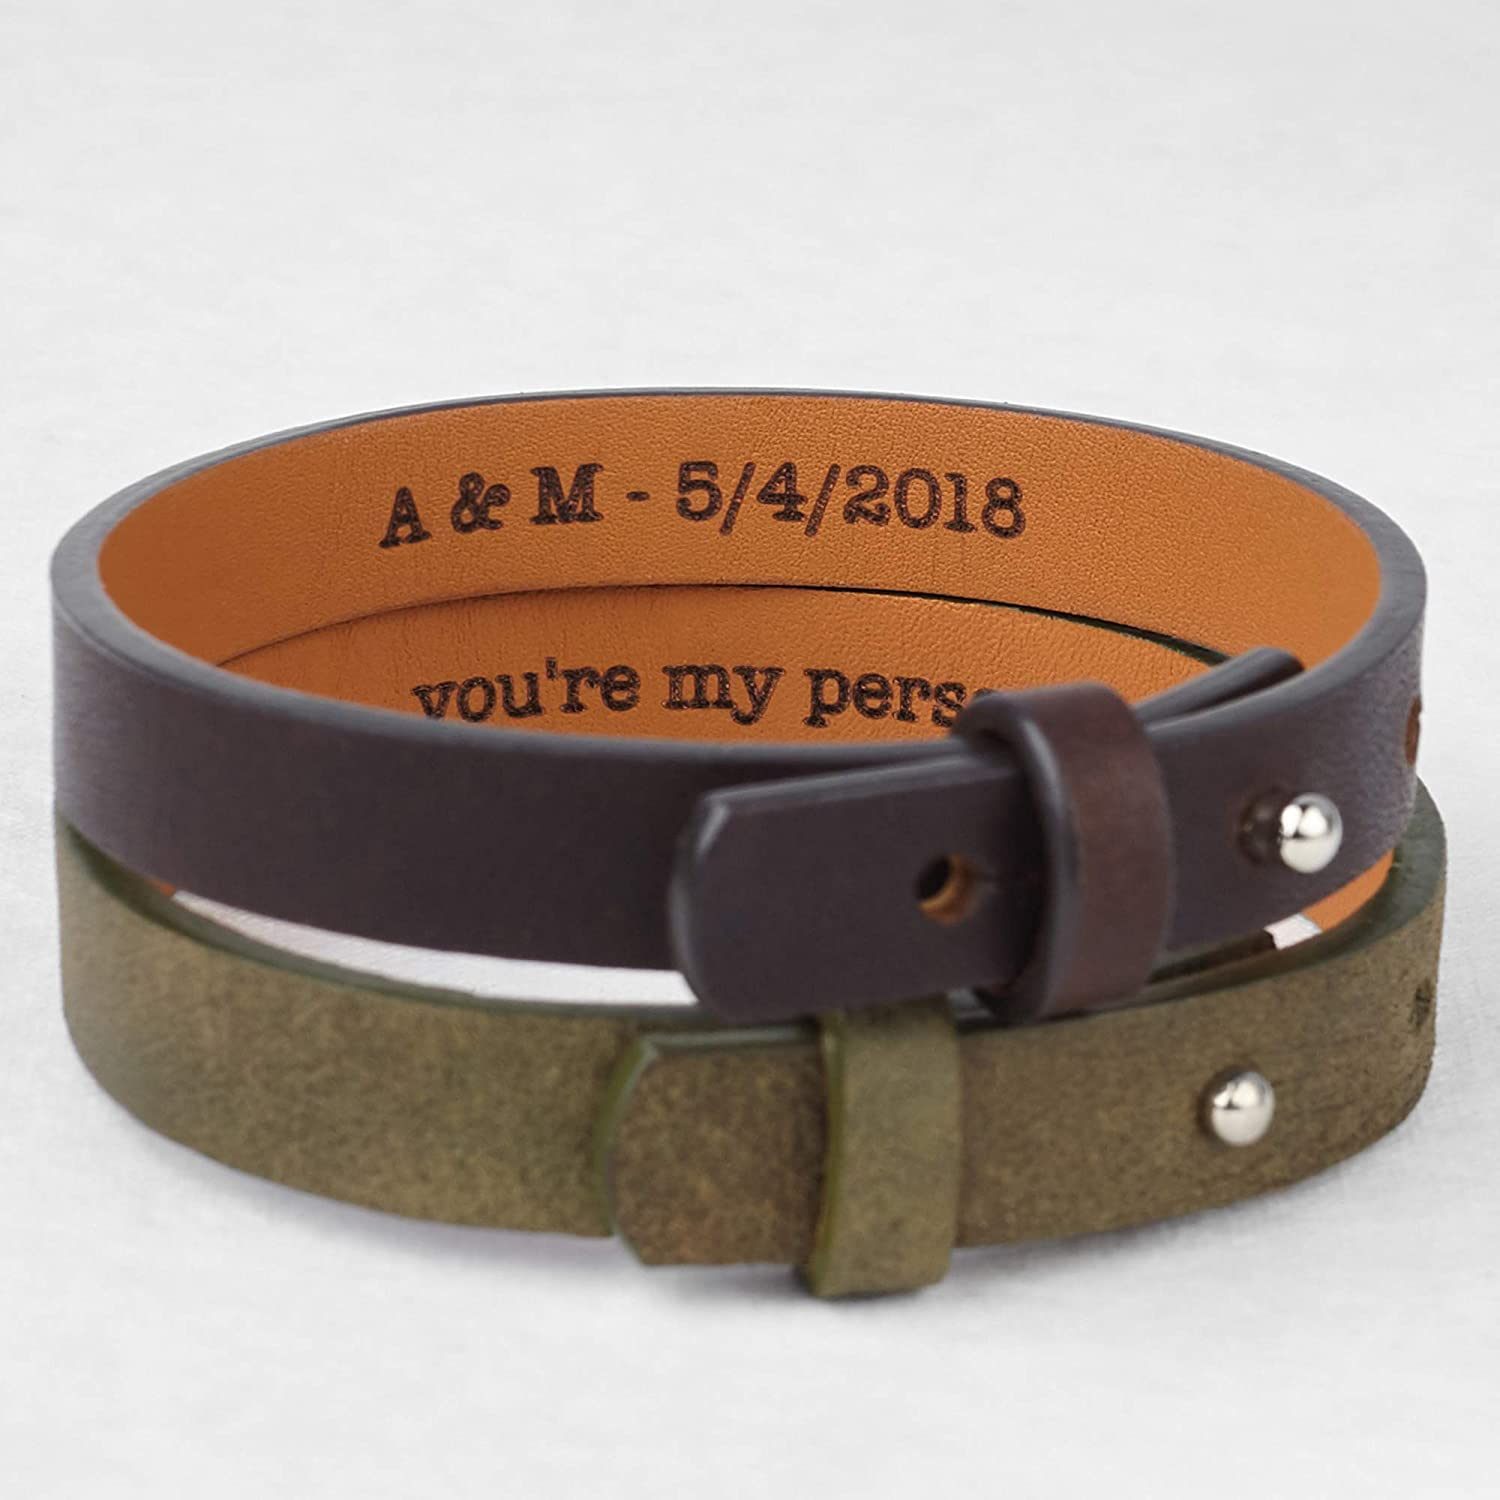 EXPRESS SHIPPING Mens Leather Bracelet Leather Personalized  Bracelet Personalized Jewelry Gift for Him Birthday Gift Anniversary gift